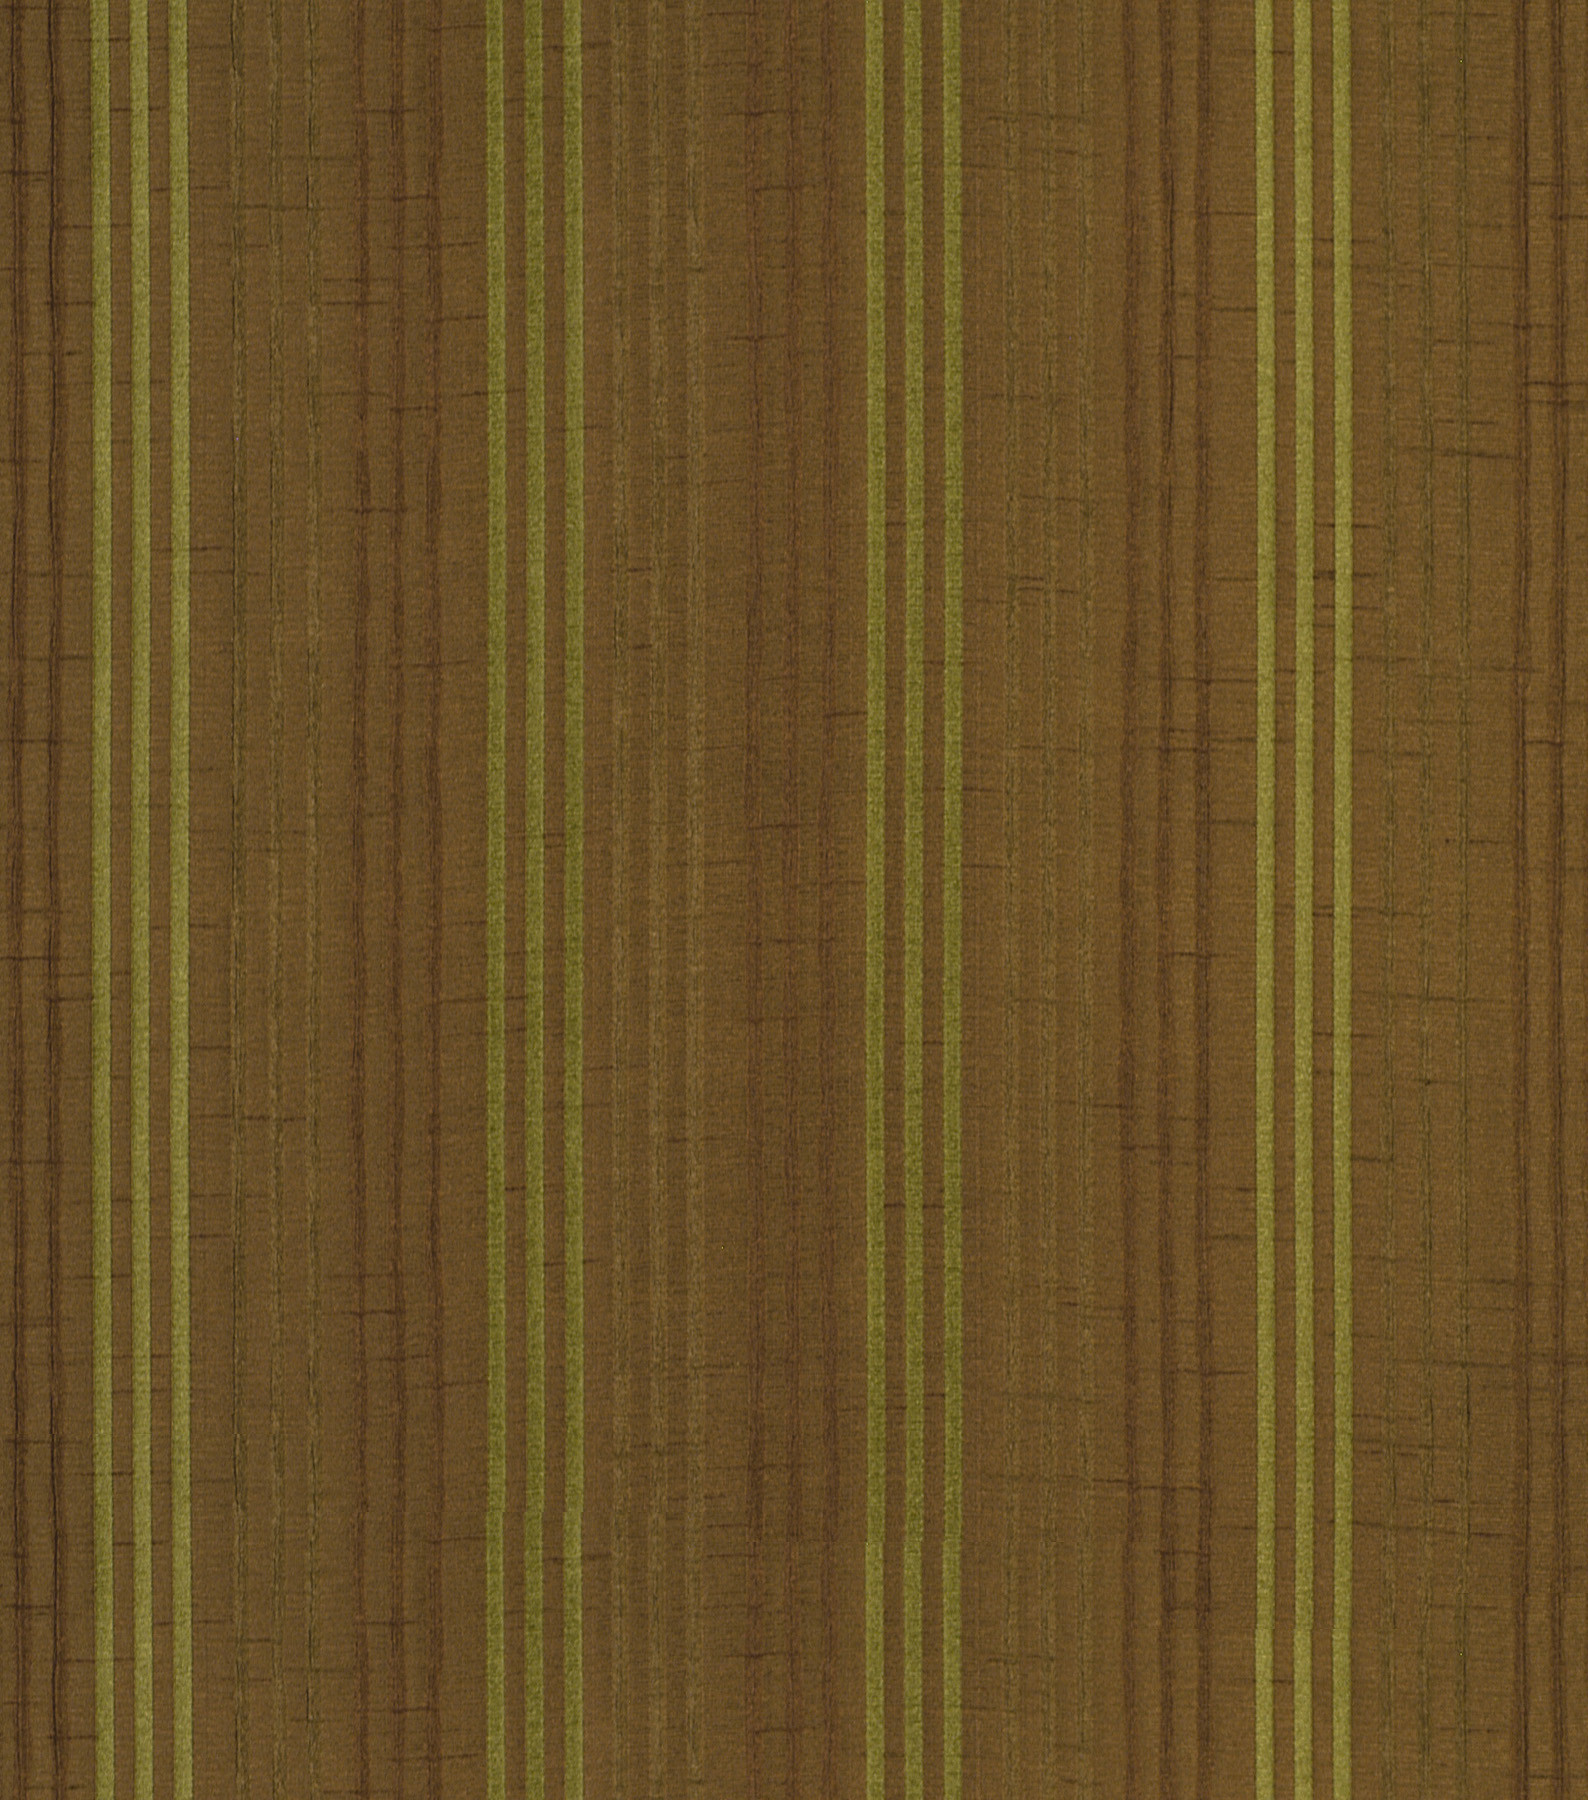 Home Decor 8\u0022x8\u0022 Fabric Swatch-Signature Series Metro Luxury Sunrise